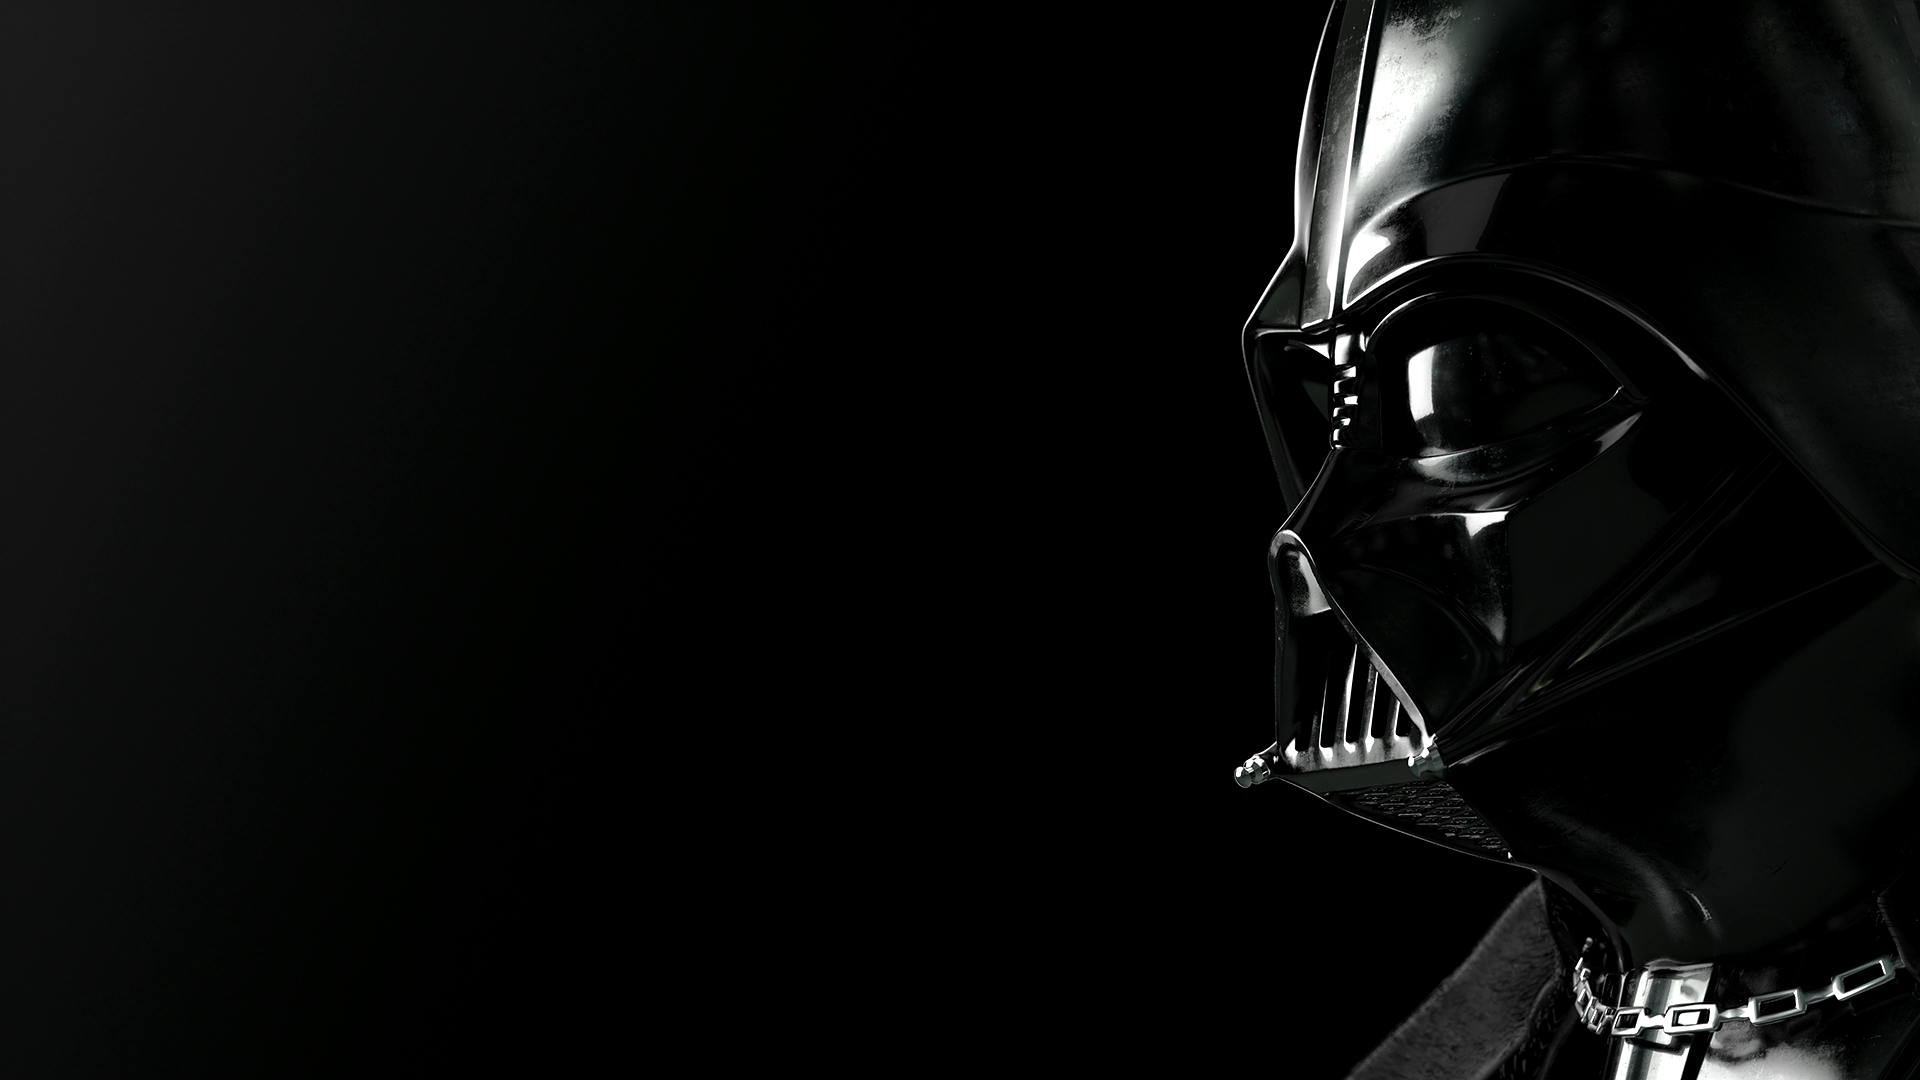 sith wallpaper 1080p